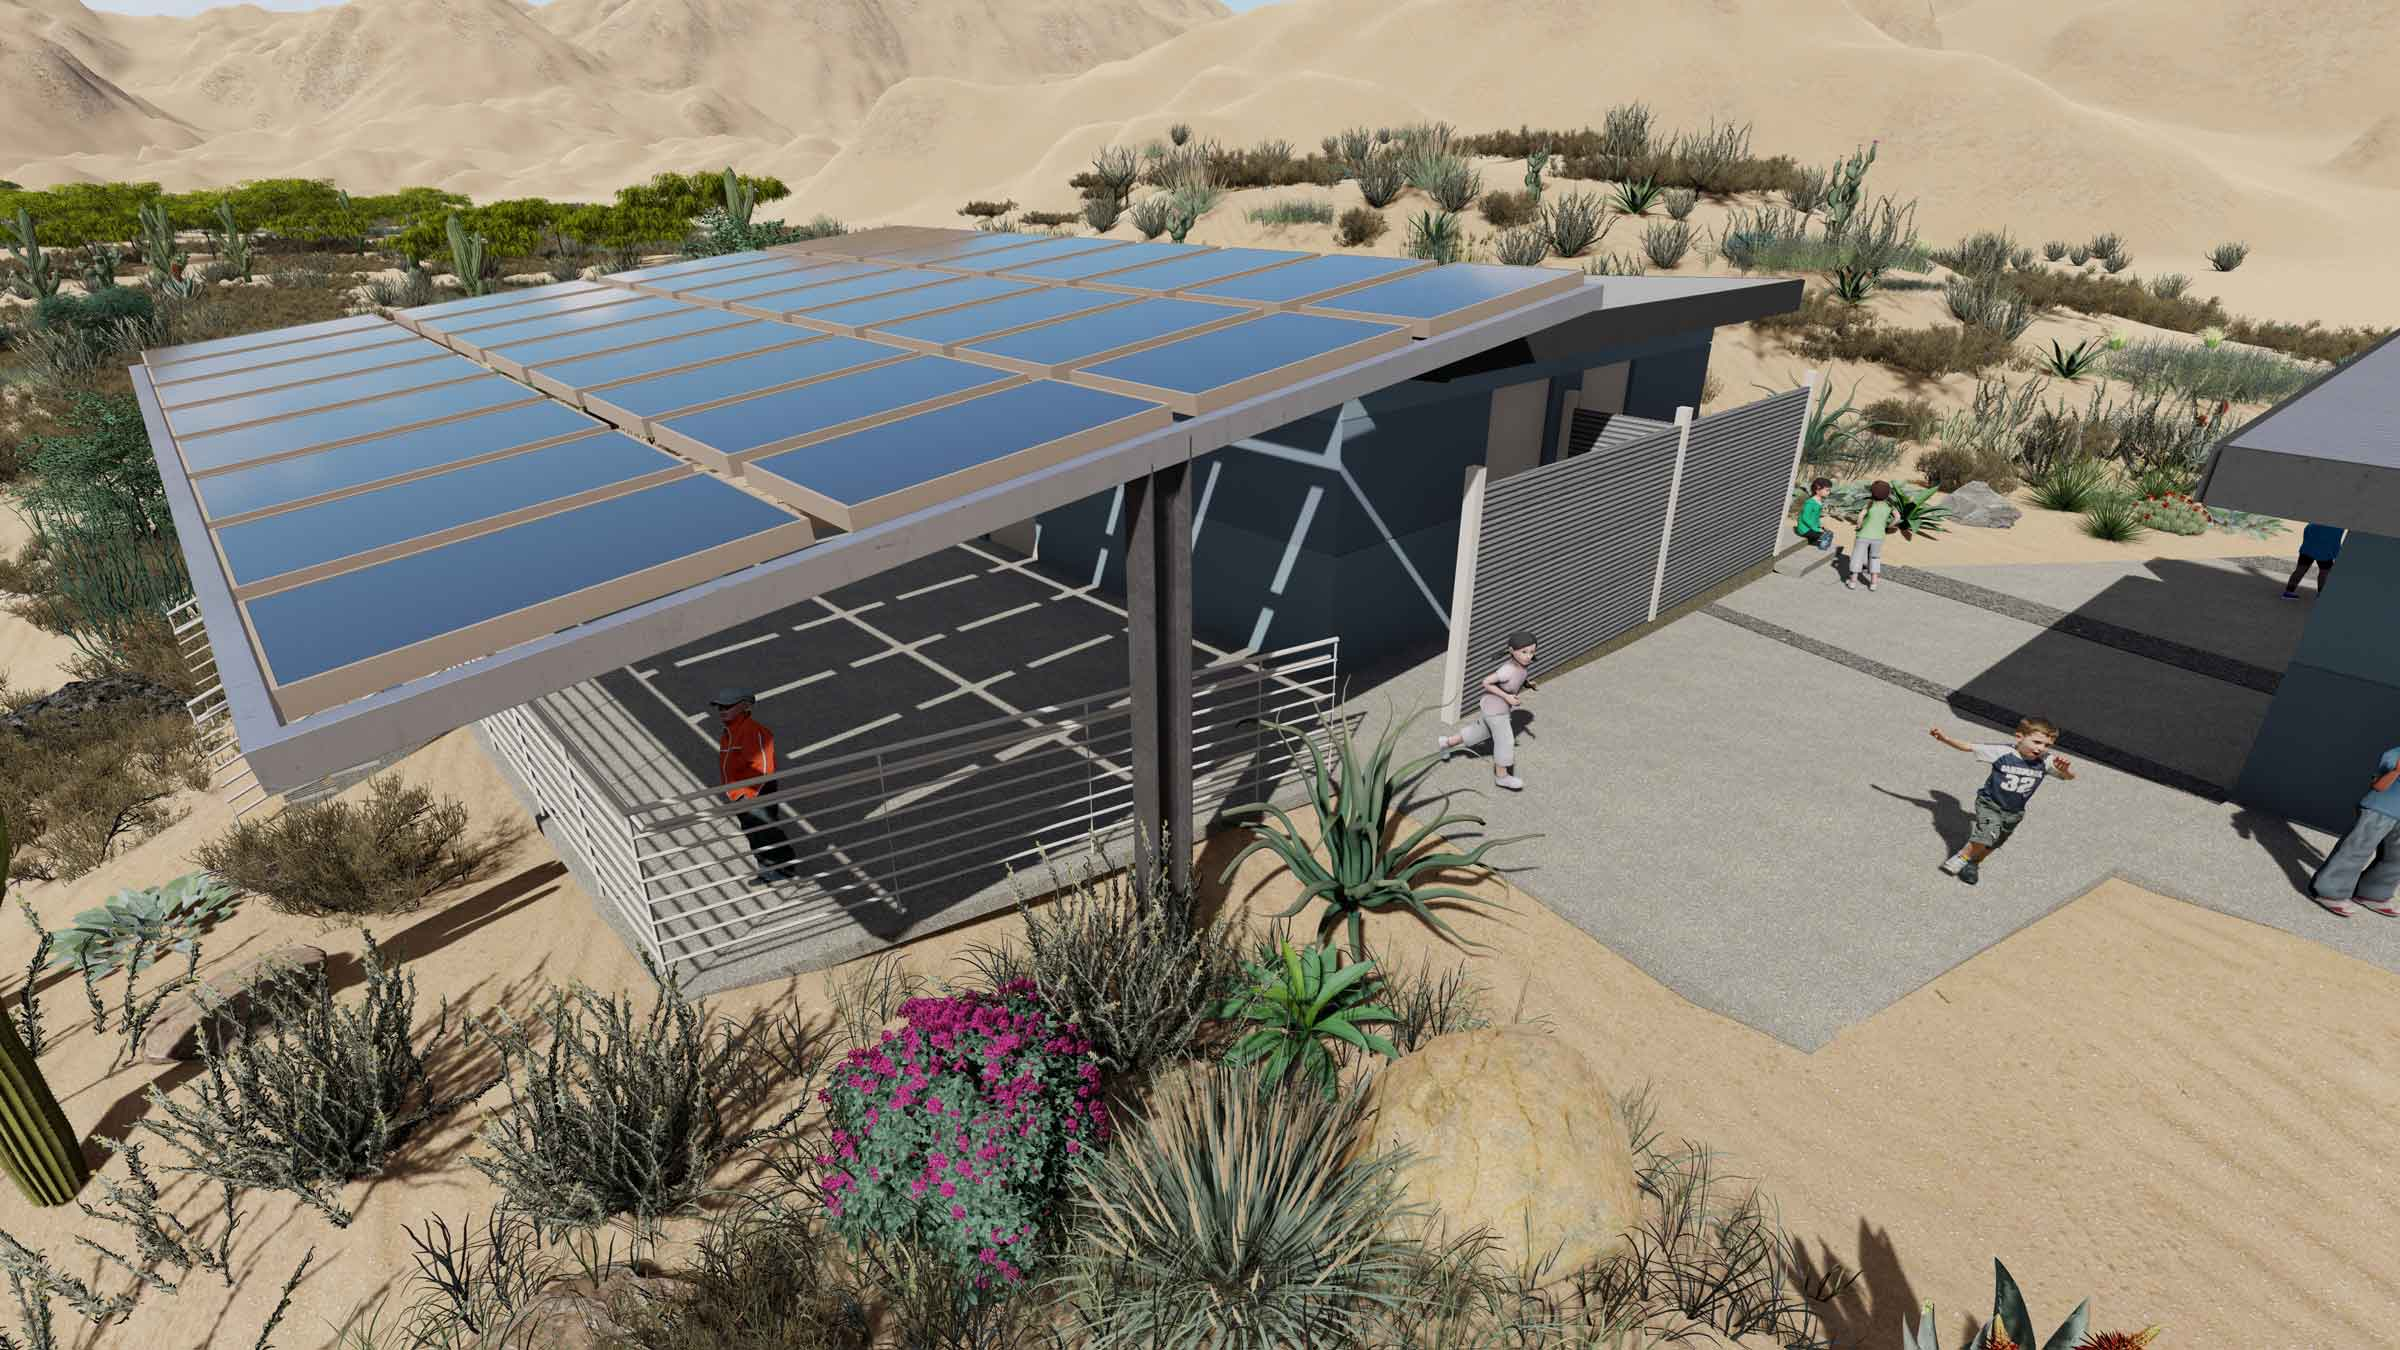 A solar shaded classroom adjoins one of the buildings acting as a teaching center and desert gateway